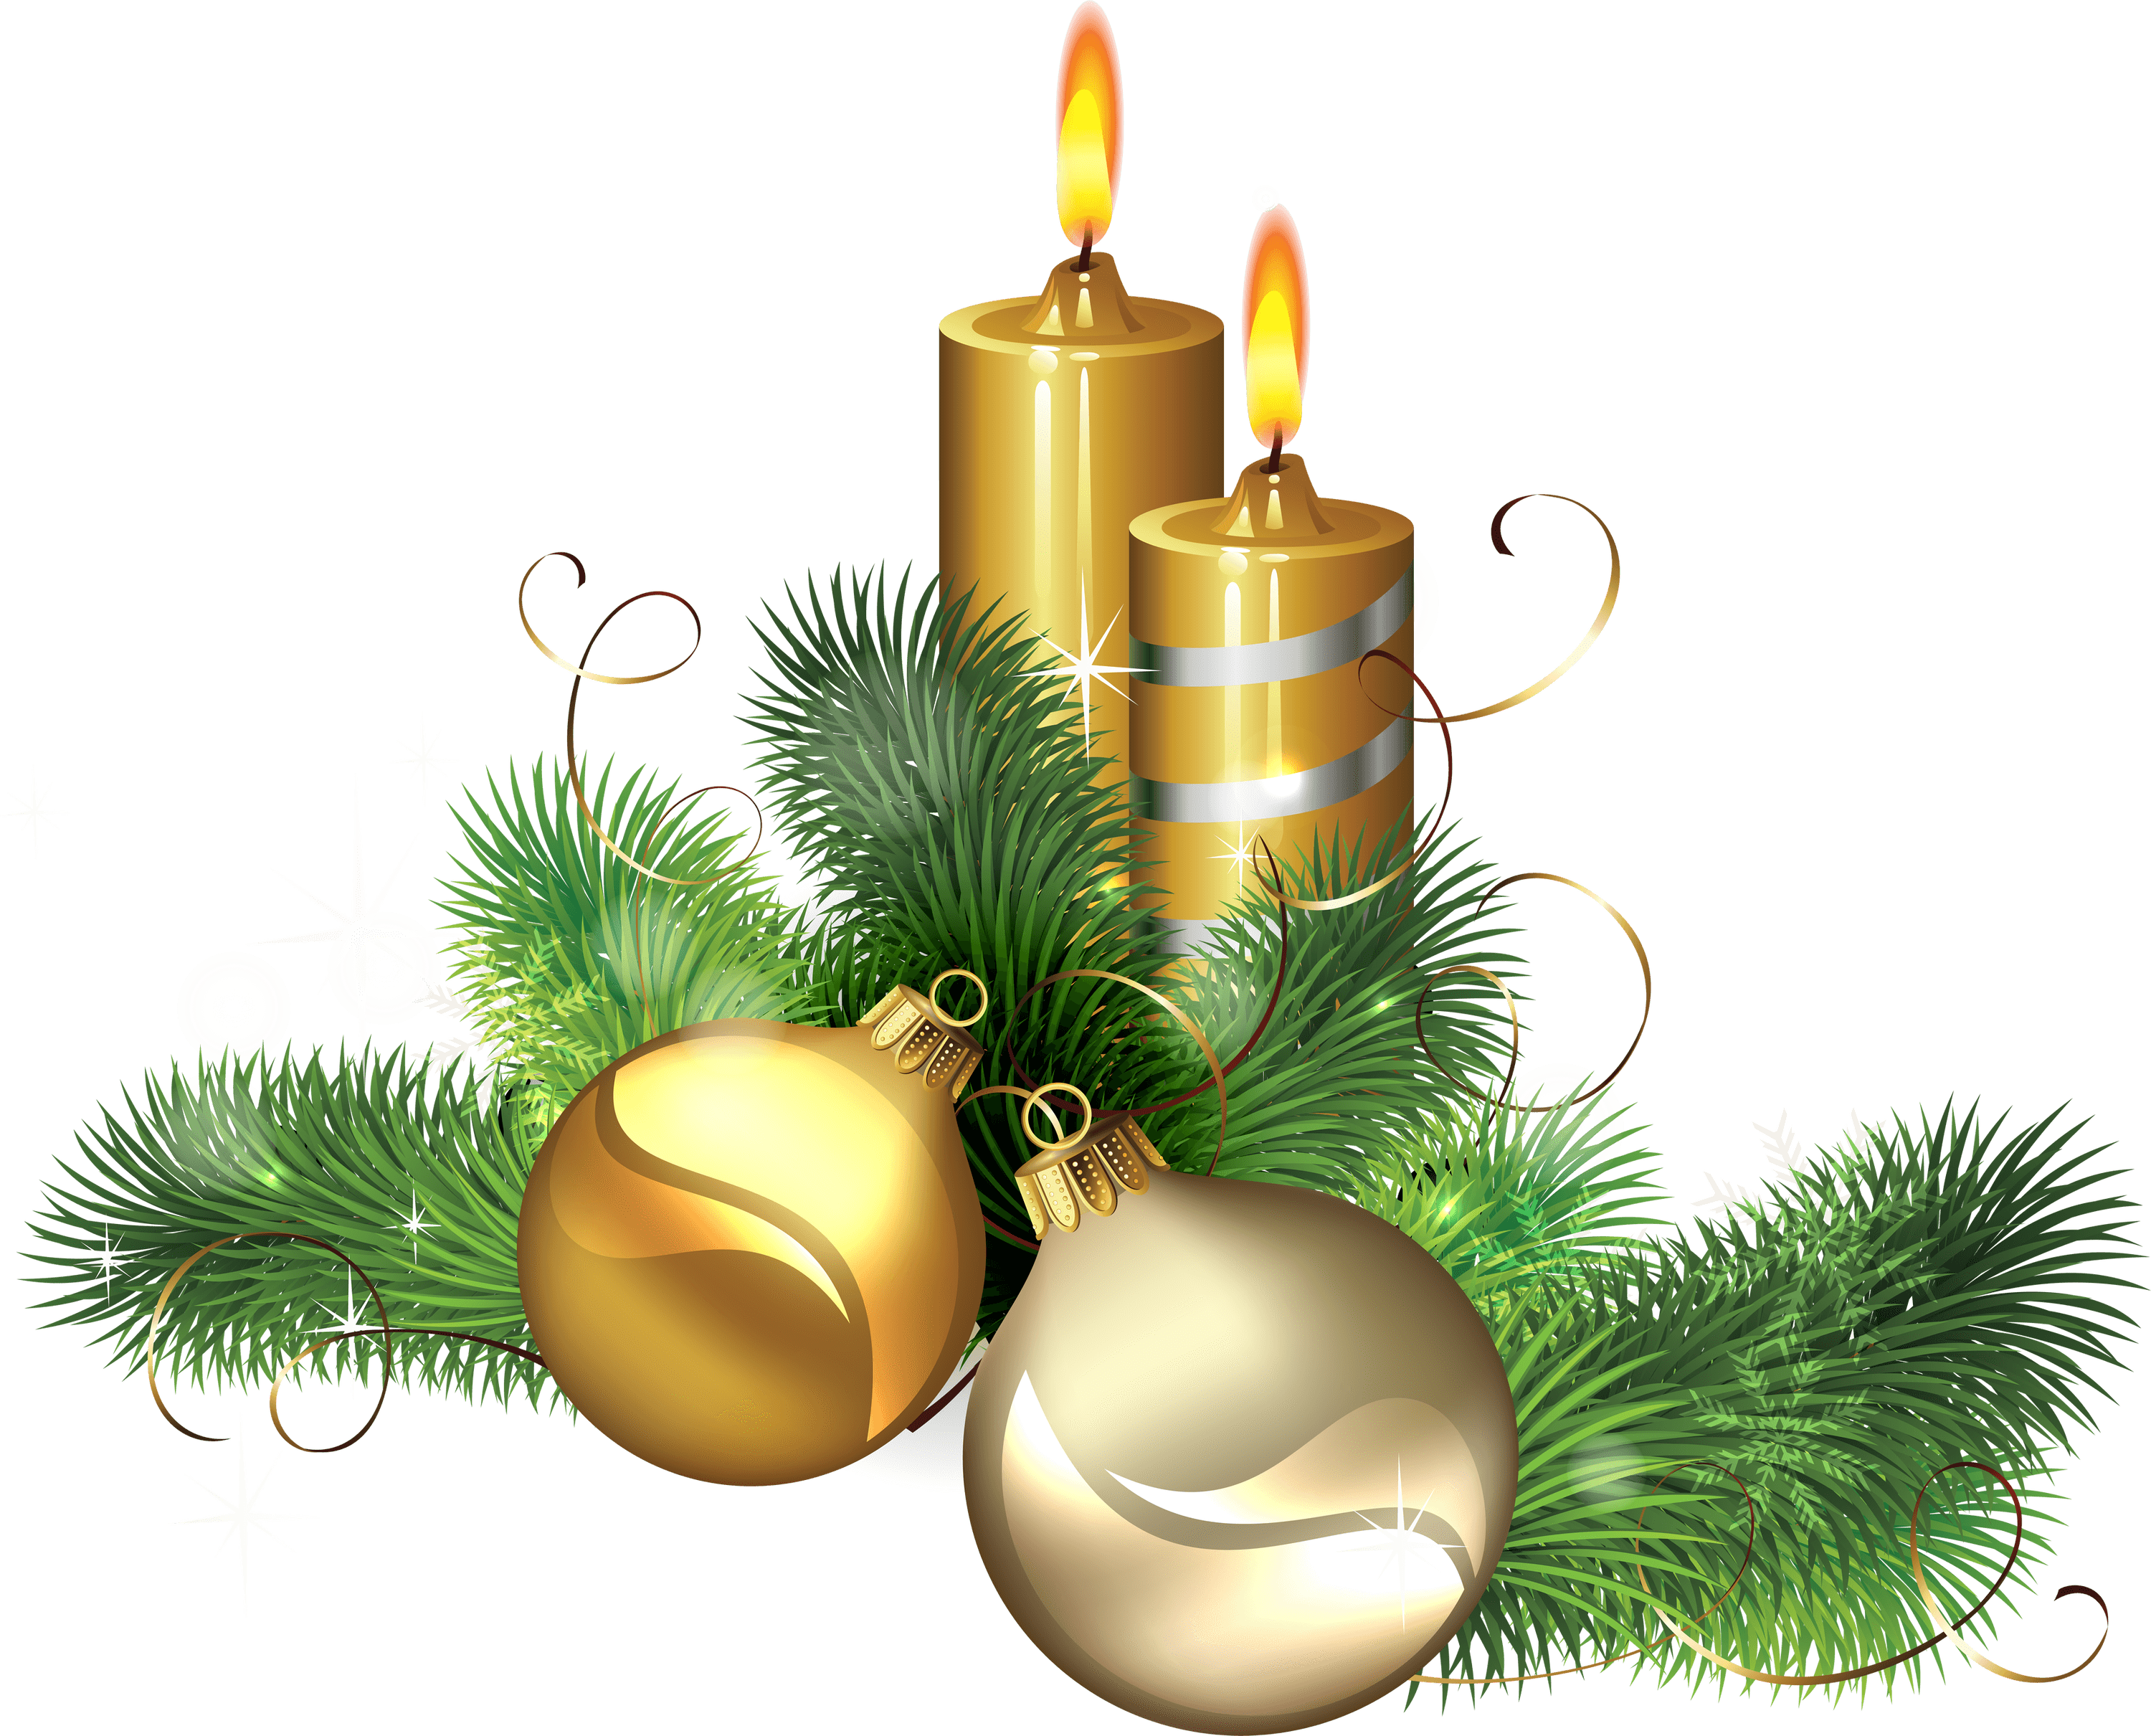 Christmas ornaments clear background images png candles. Candle gold transparent stickpng